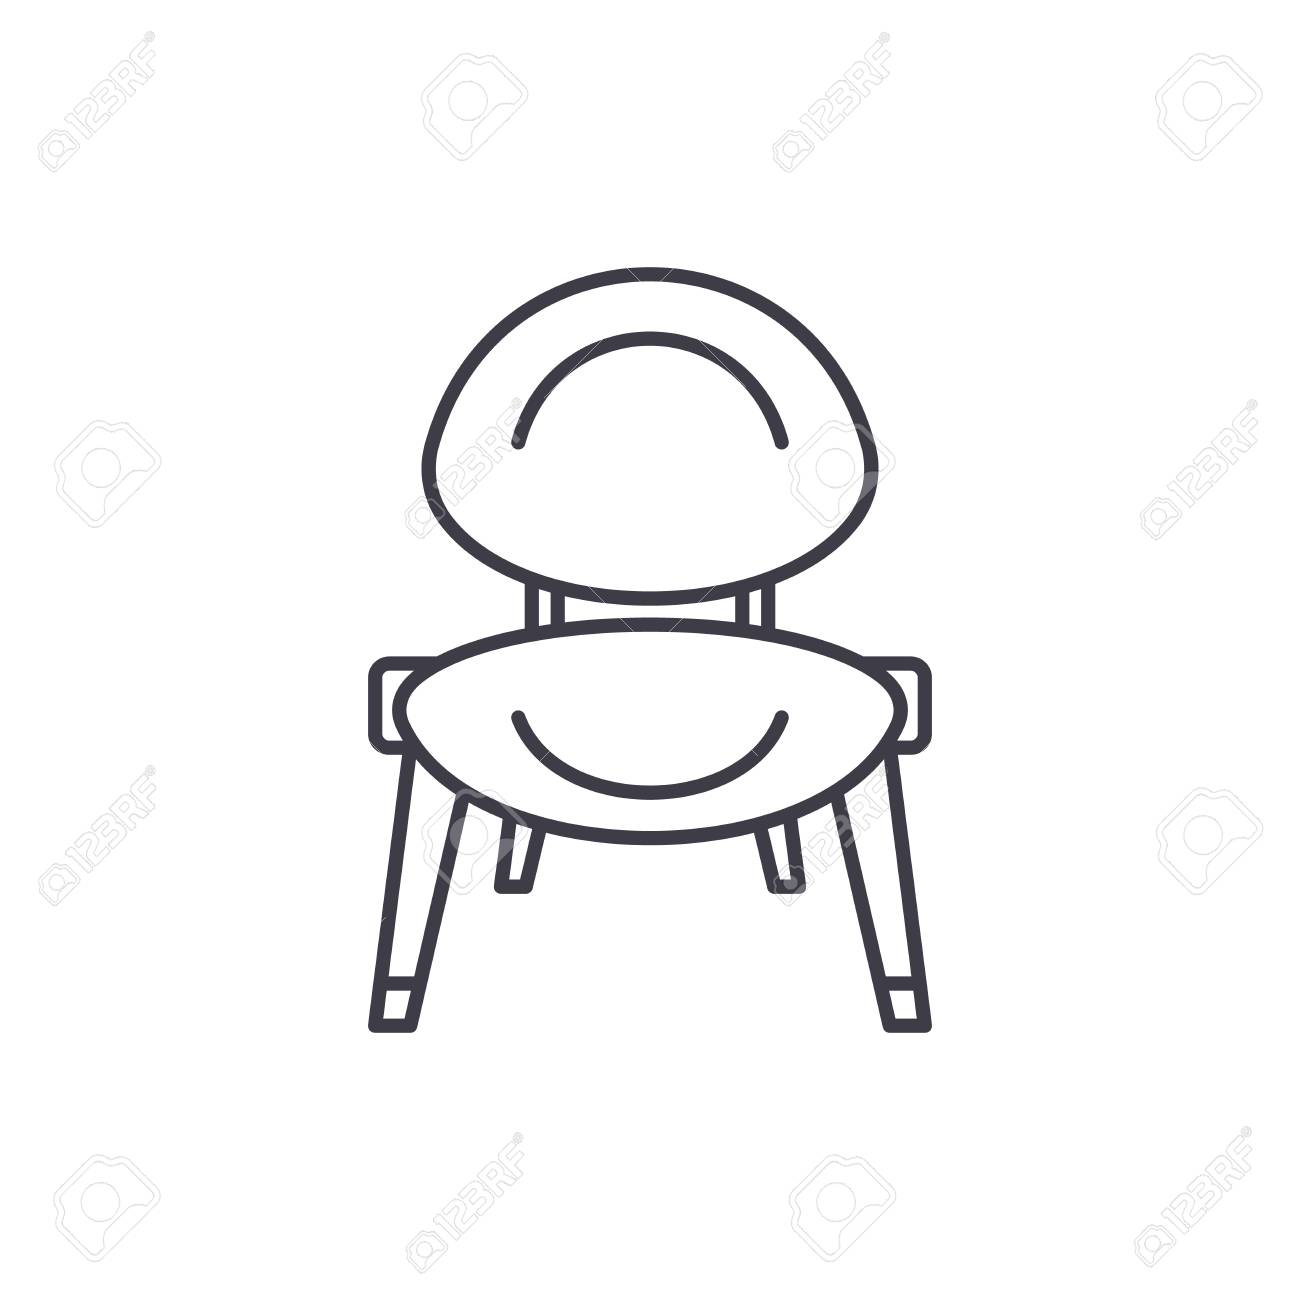 Baby Chair Line Icon Concept Baby Chair Vector Linear